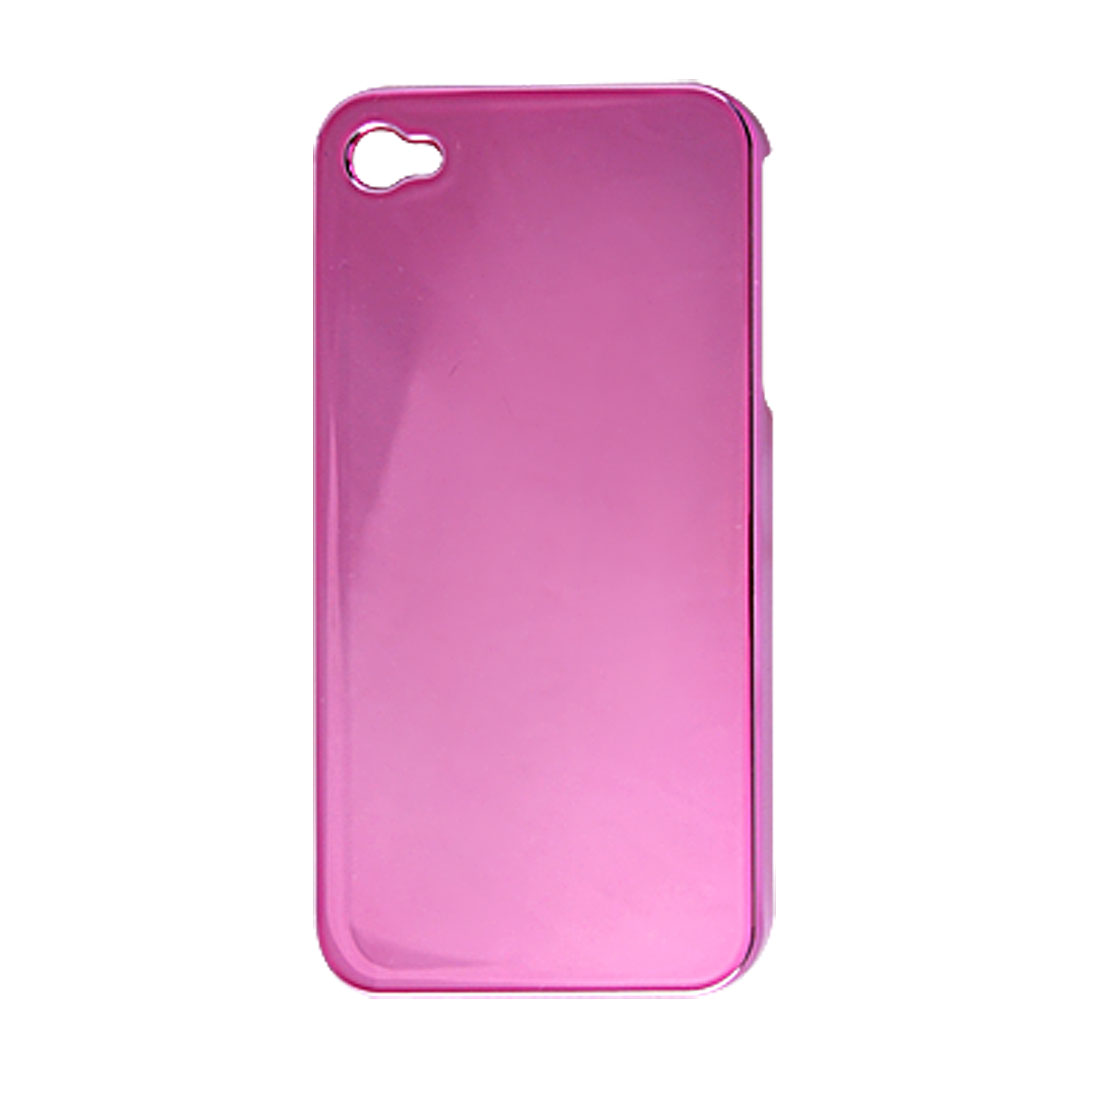 Fuchsia Specular Electroplated Hard Plastic Case for iPhone 4 4G